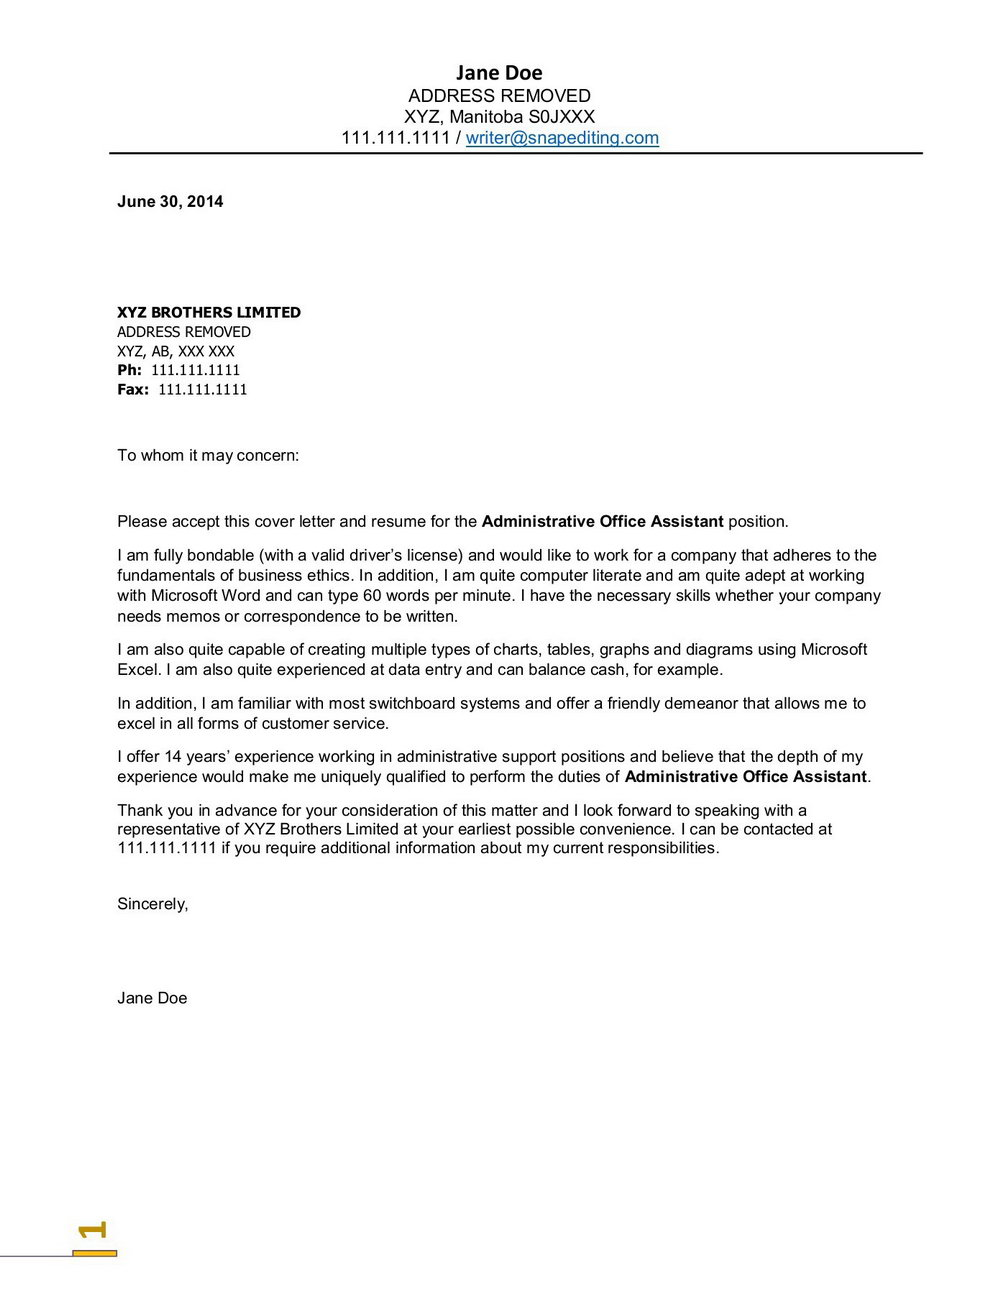 Free Cover Letter Templates For Administrative Assistant